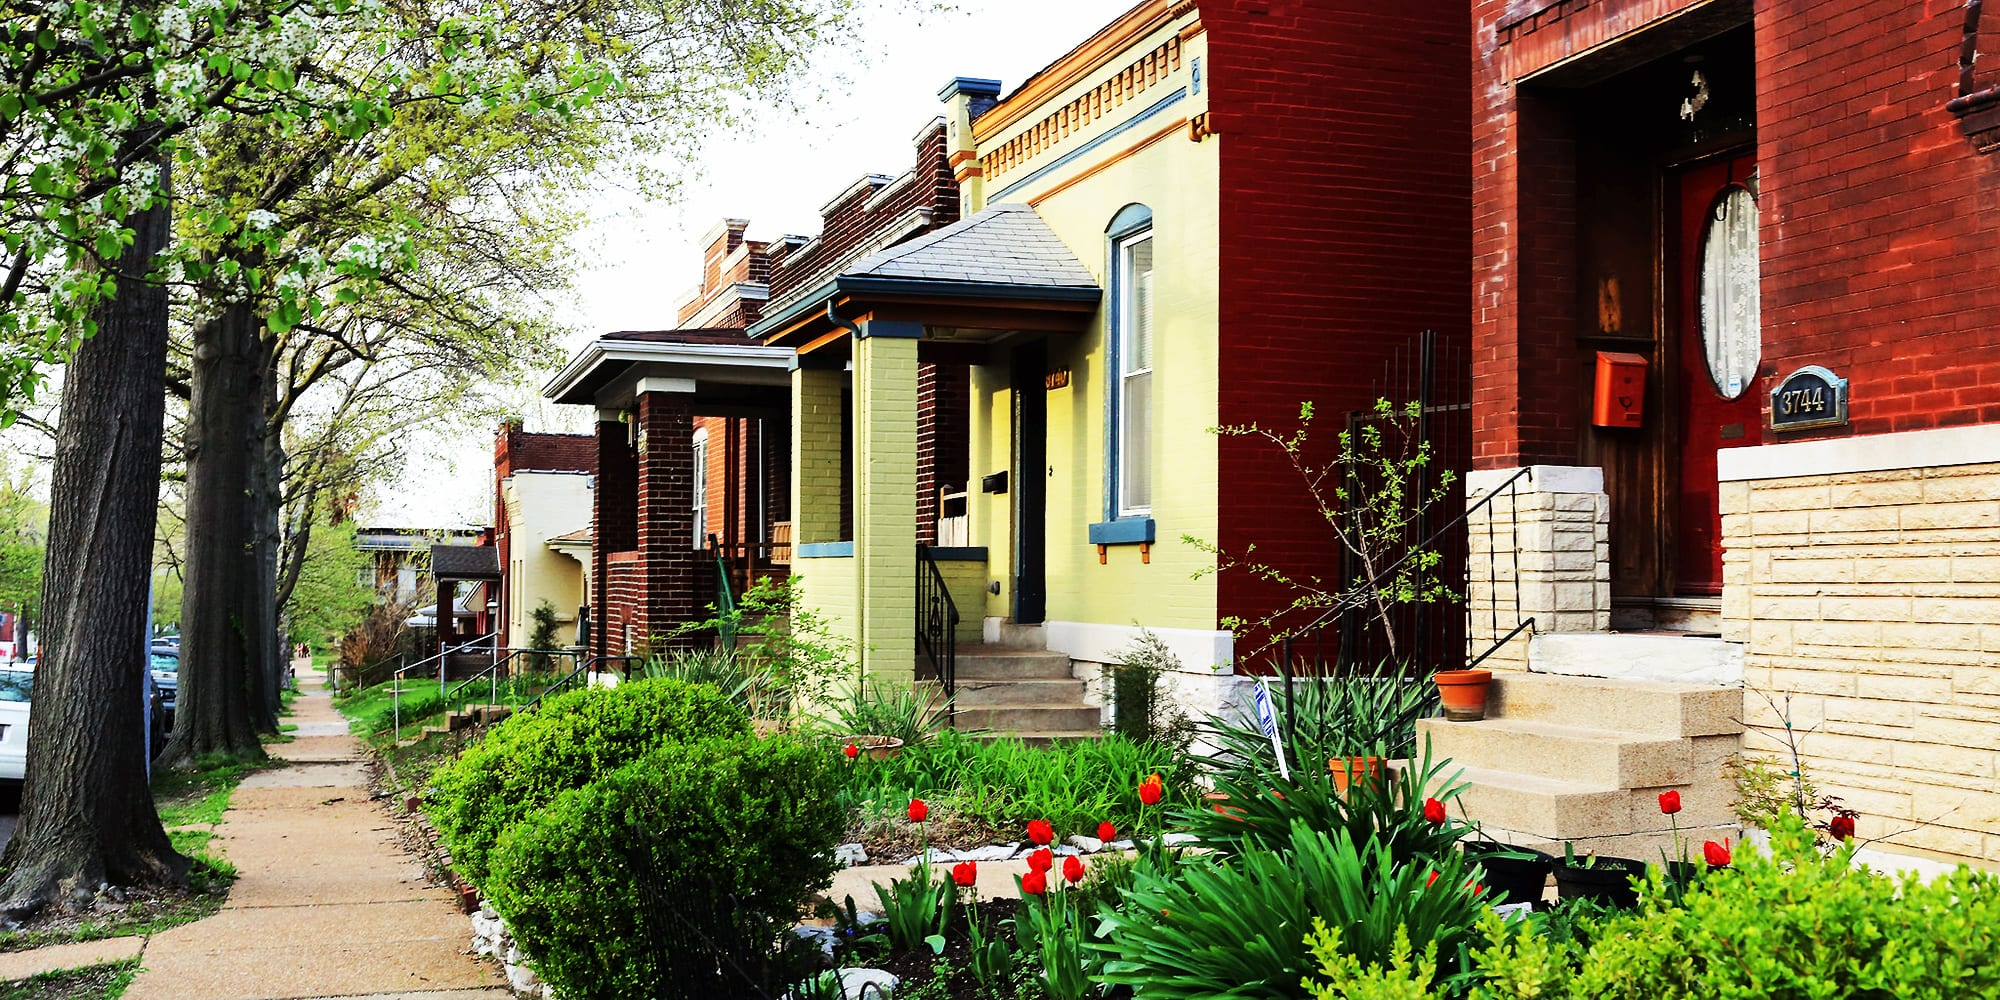 Houses on Virginia Avenue. Photo by Paul Sableman.